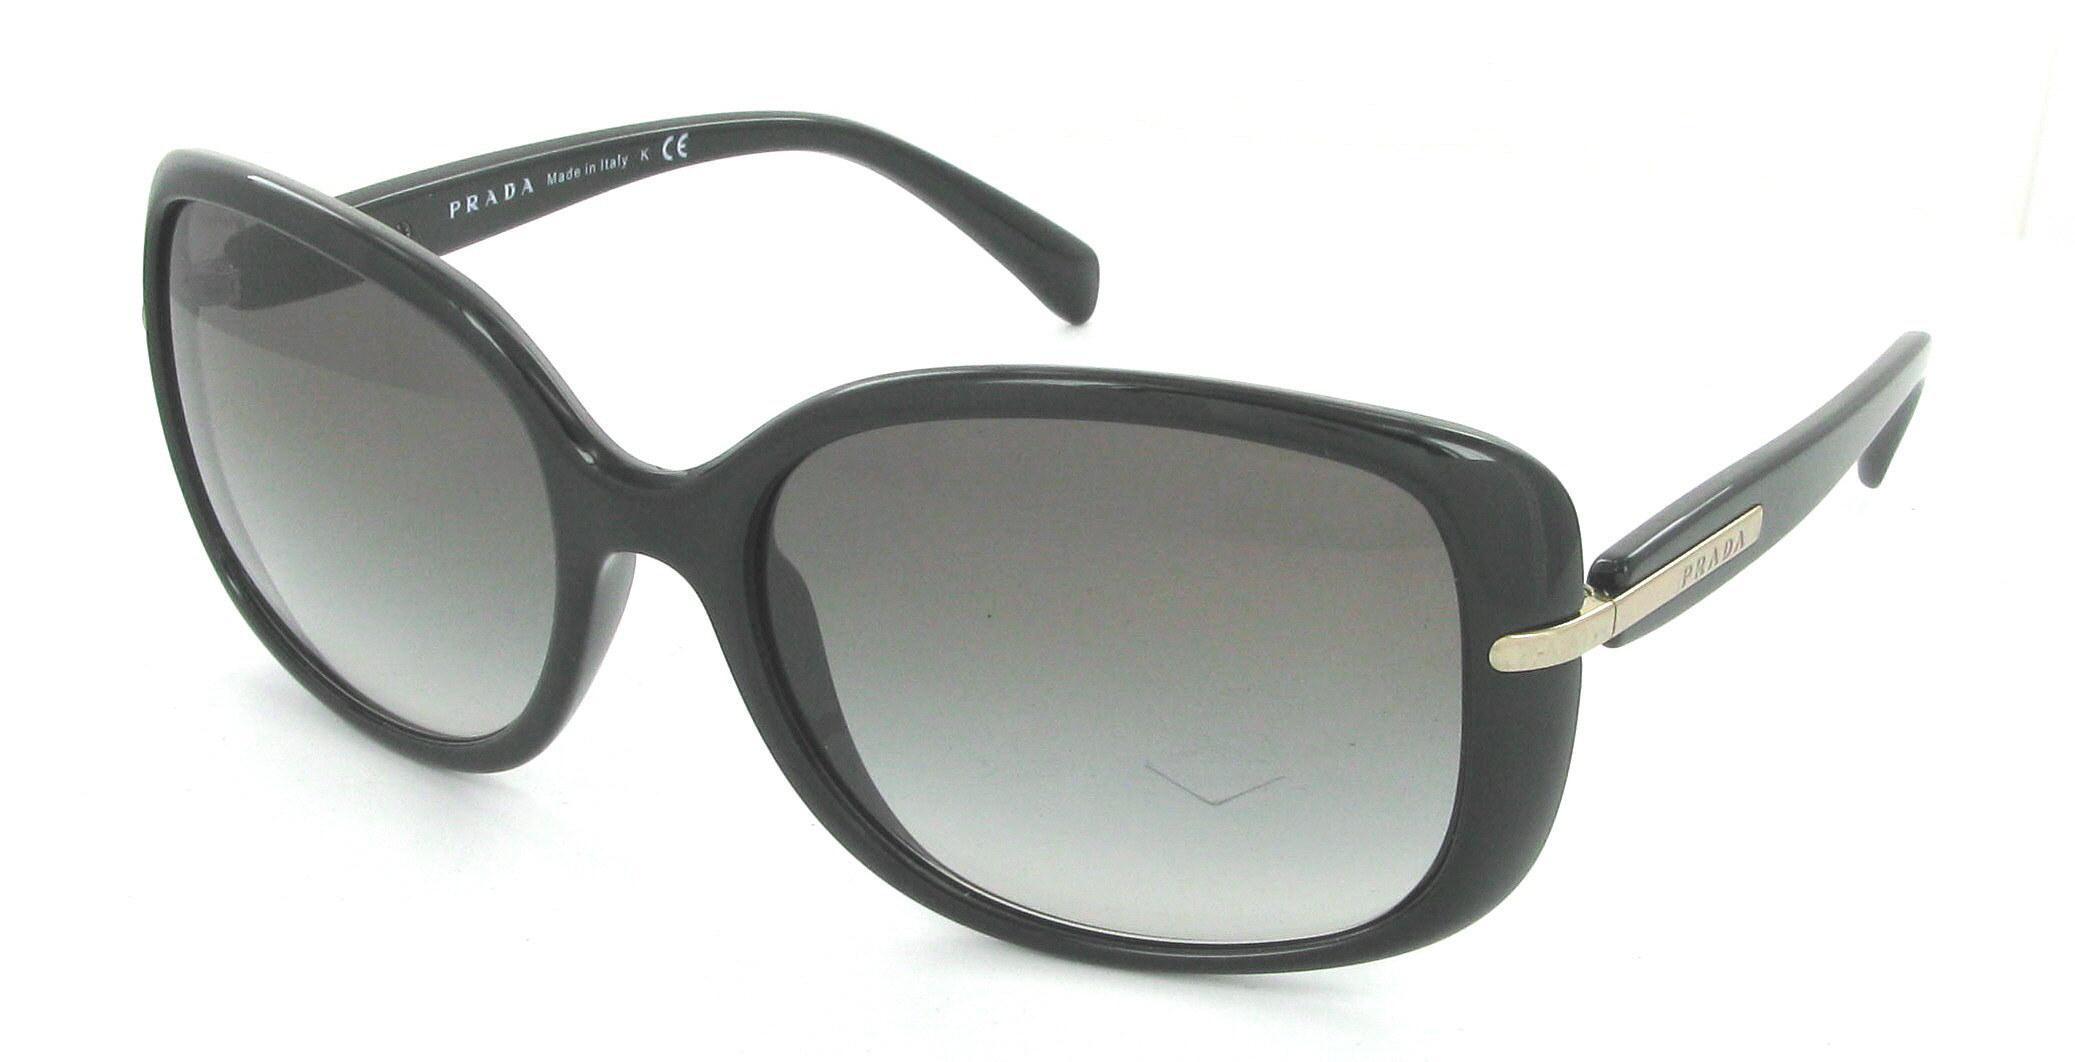 Soleil Soleil Prada lunettes lunettes lunettes lunettes 2011 Polarisees Homme  Lunettes xqaqYw80 54ccfcb42fd2